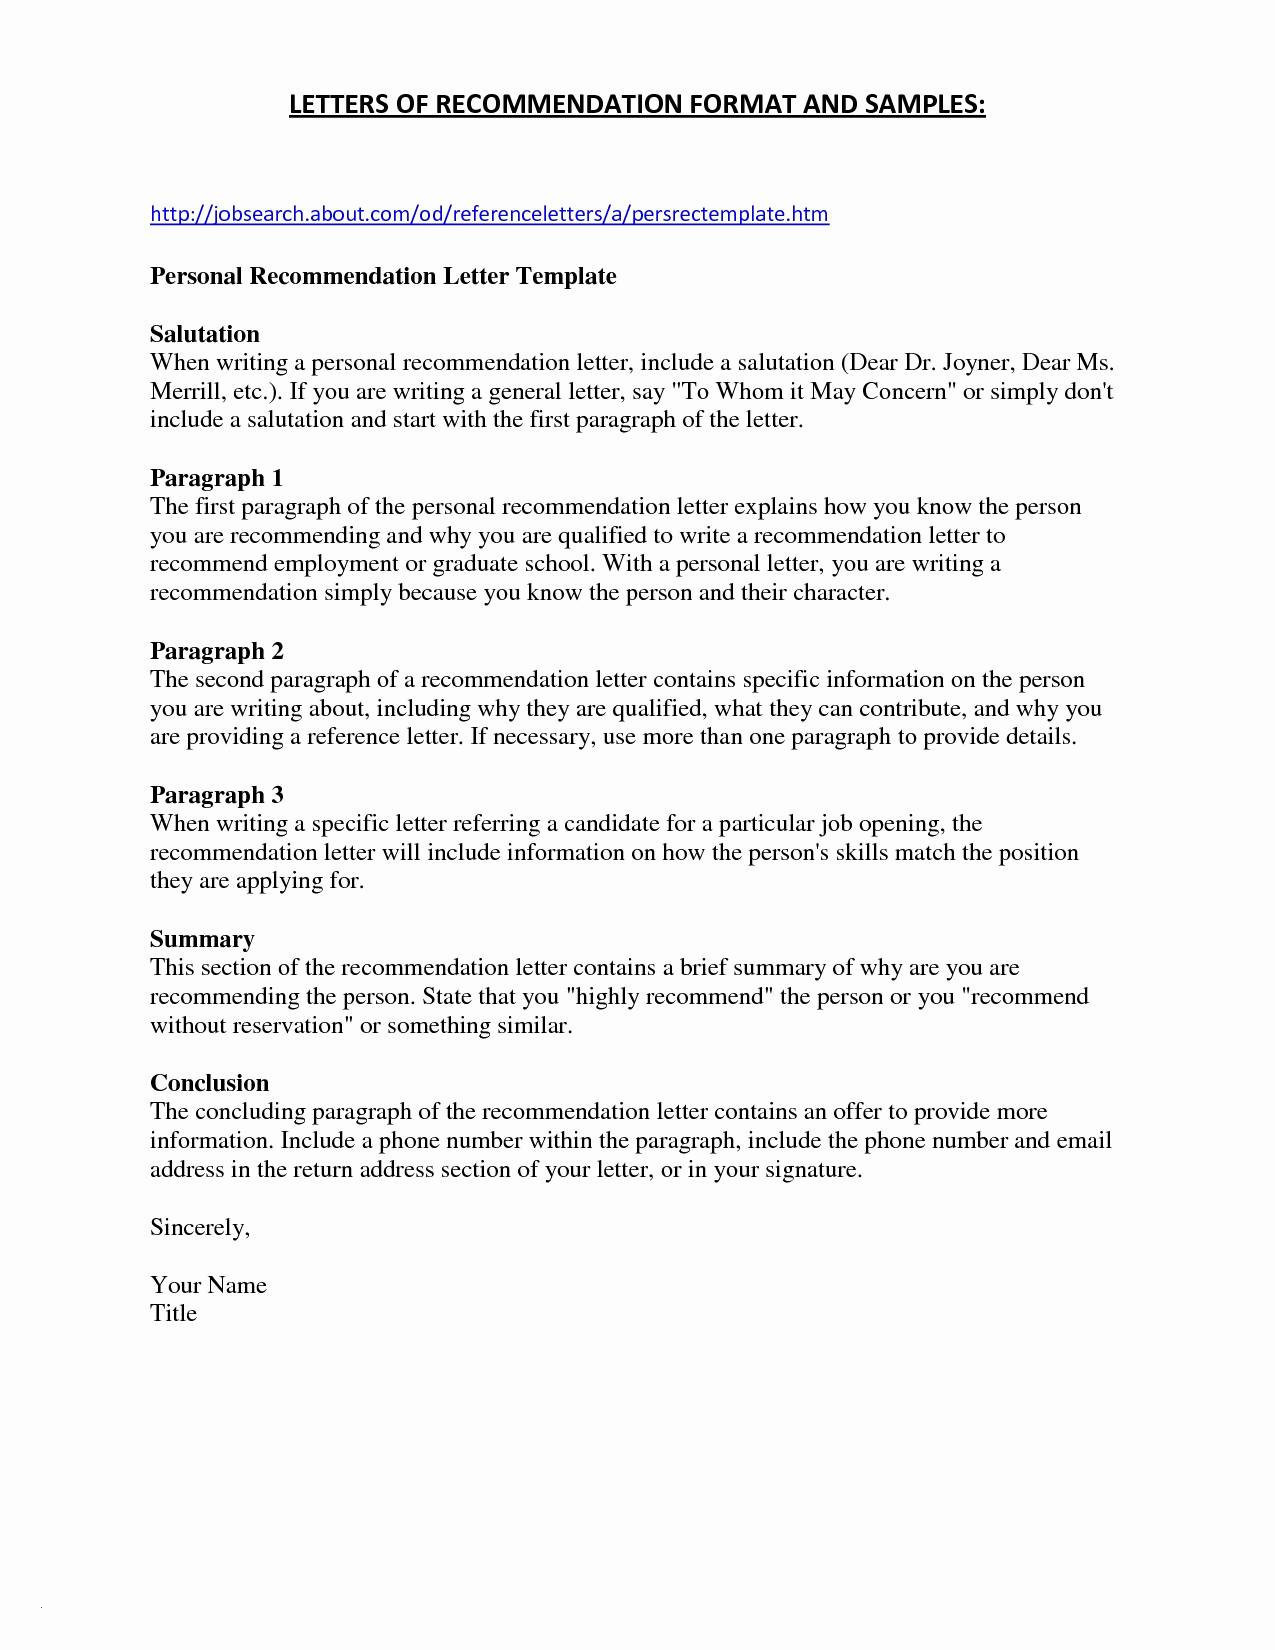 Open Office Resume Cover Letter Template - Resume Templates Open Fice Free Fresh Free Resume Template Genial